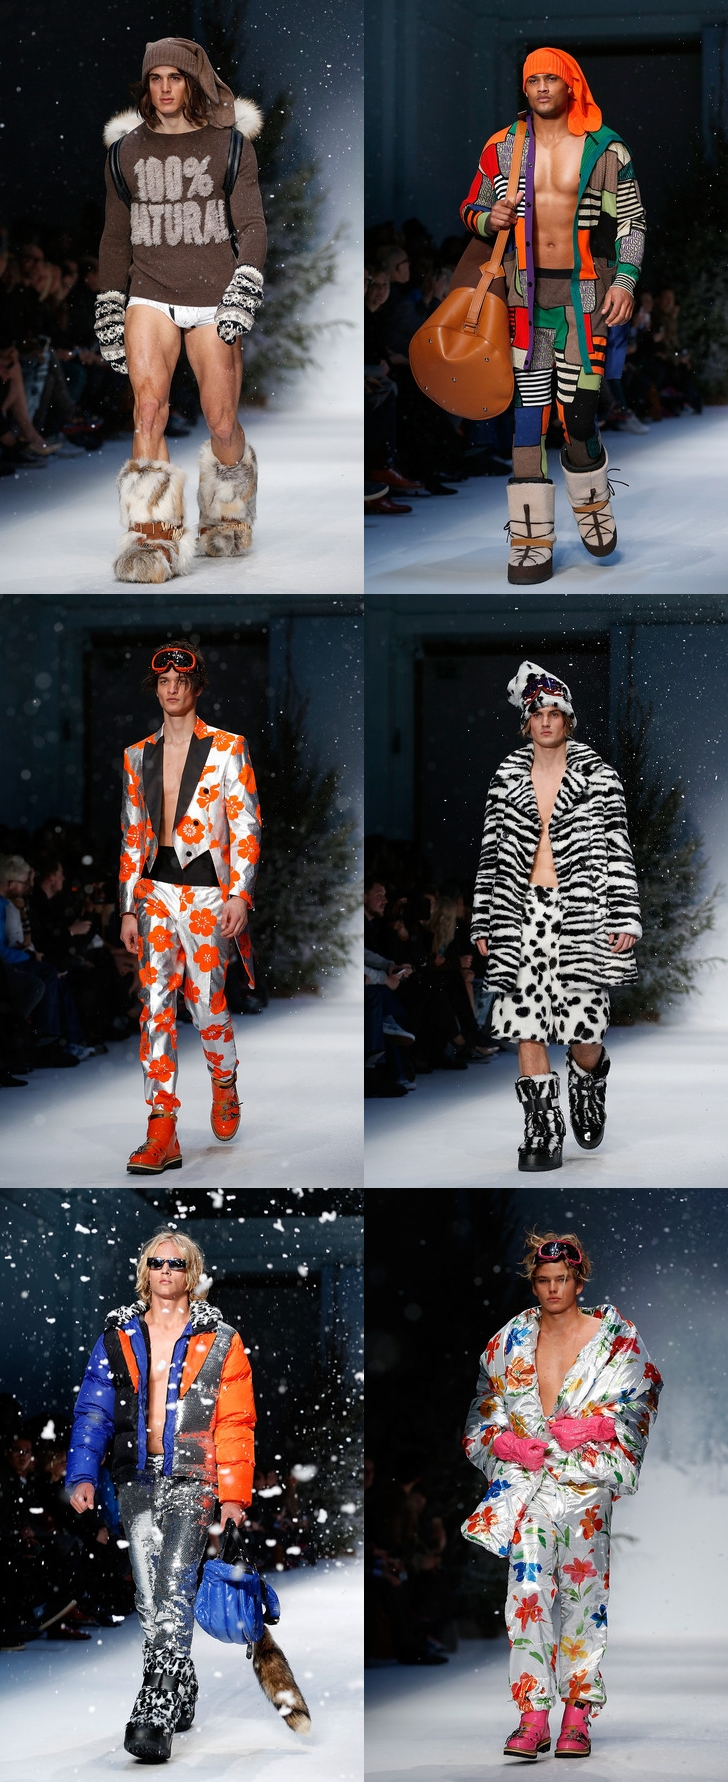 Moschino+Runway+London+Collections+Men+AW15+alex cursino, fashion blogger, moda sem censura, tendencia masculina, estilo masculino, moda masculina, fashion blogger, blogger, 3